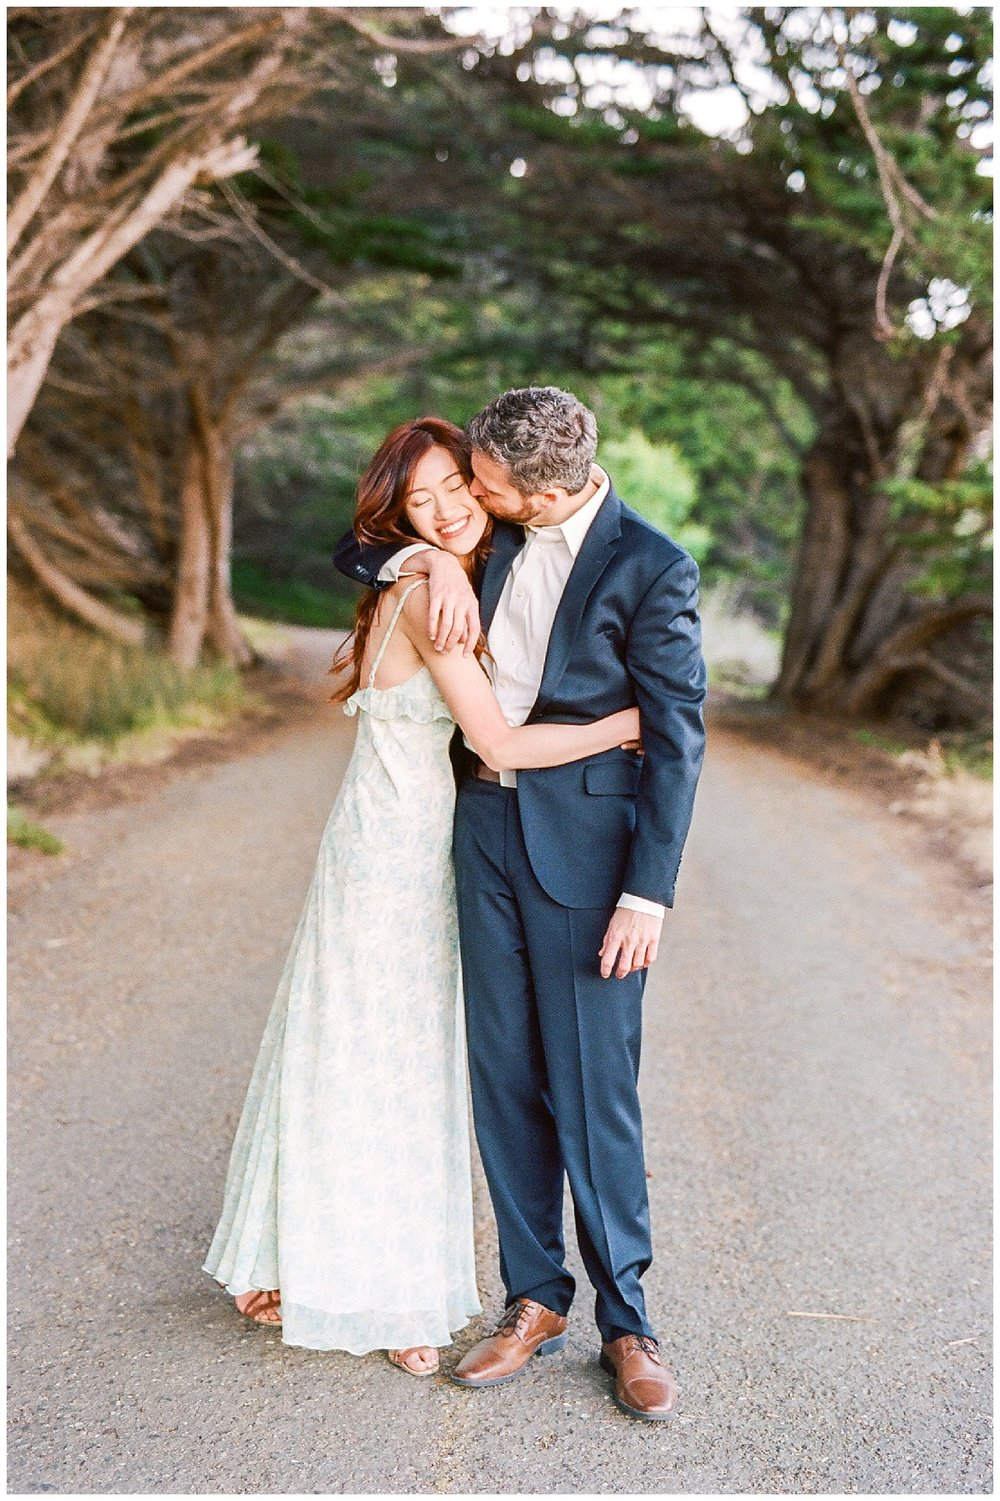 Janine_Licare_Photography_San_Francisco_Wedding_Photographer_0021.jpg